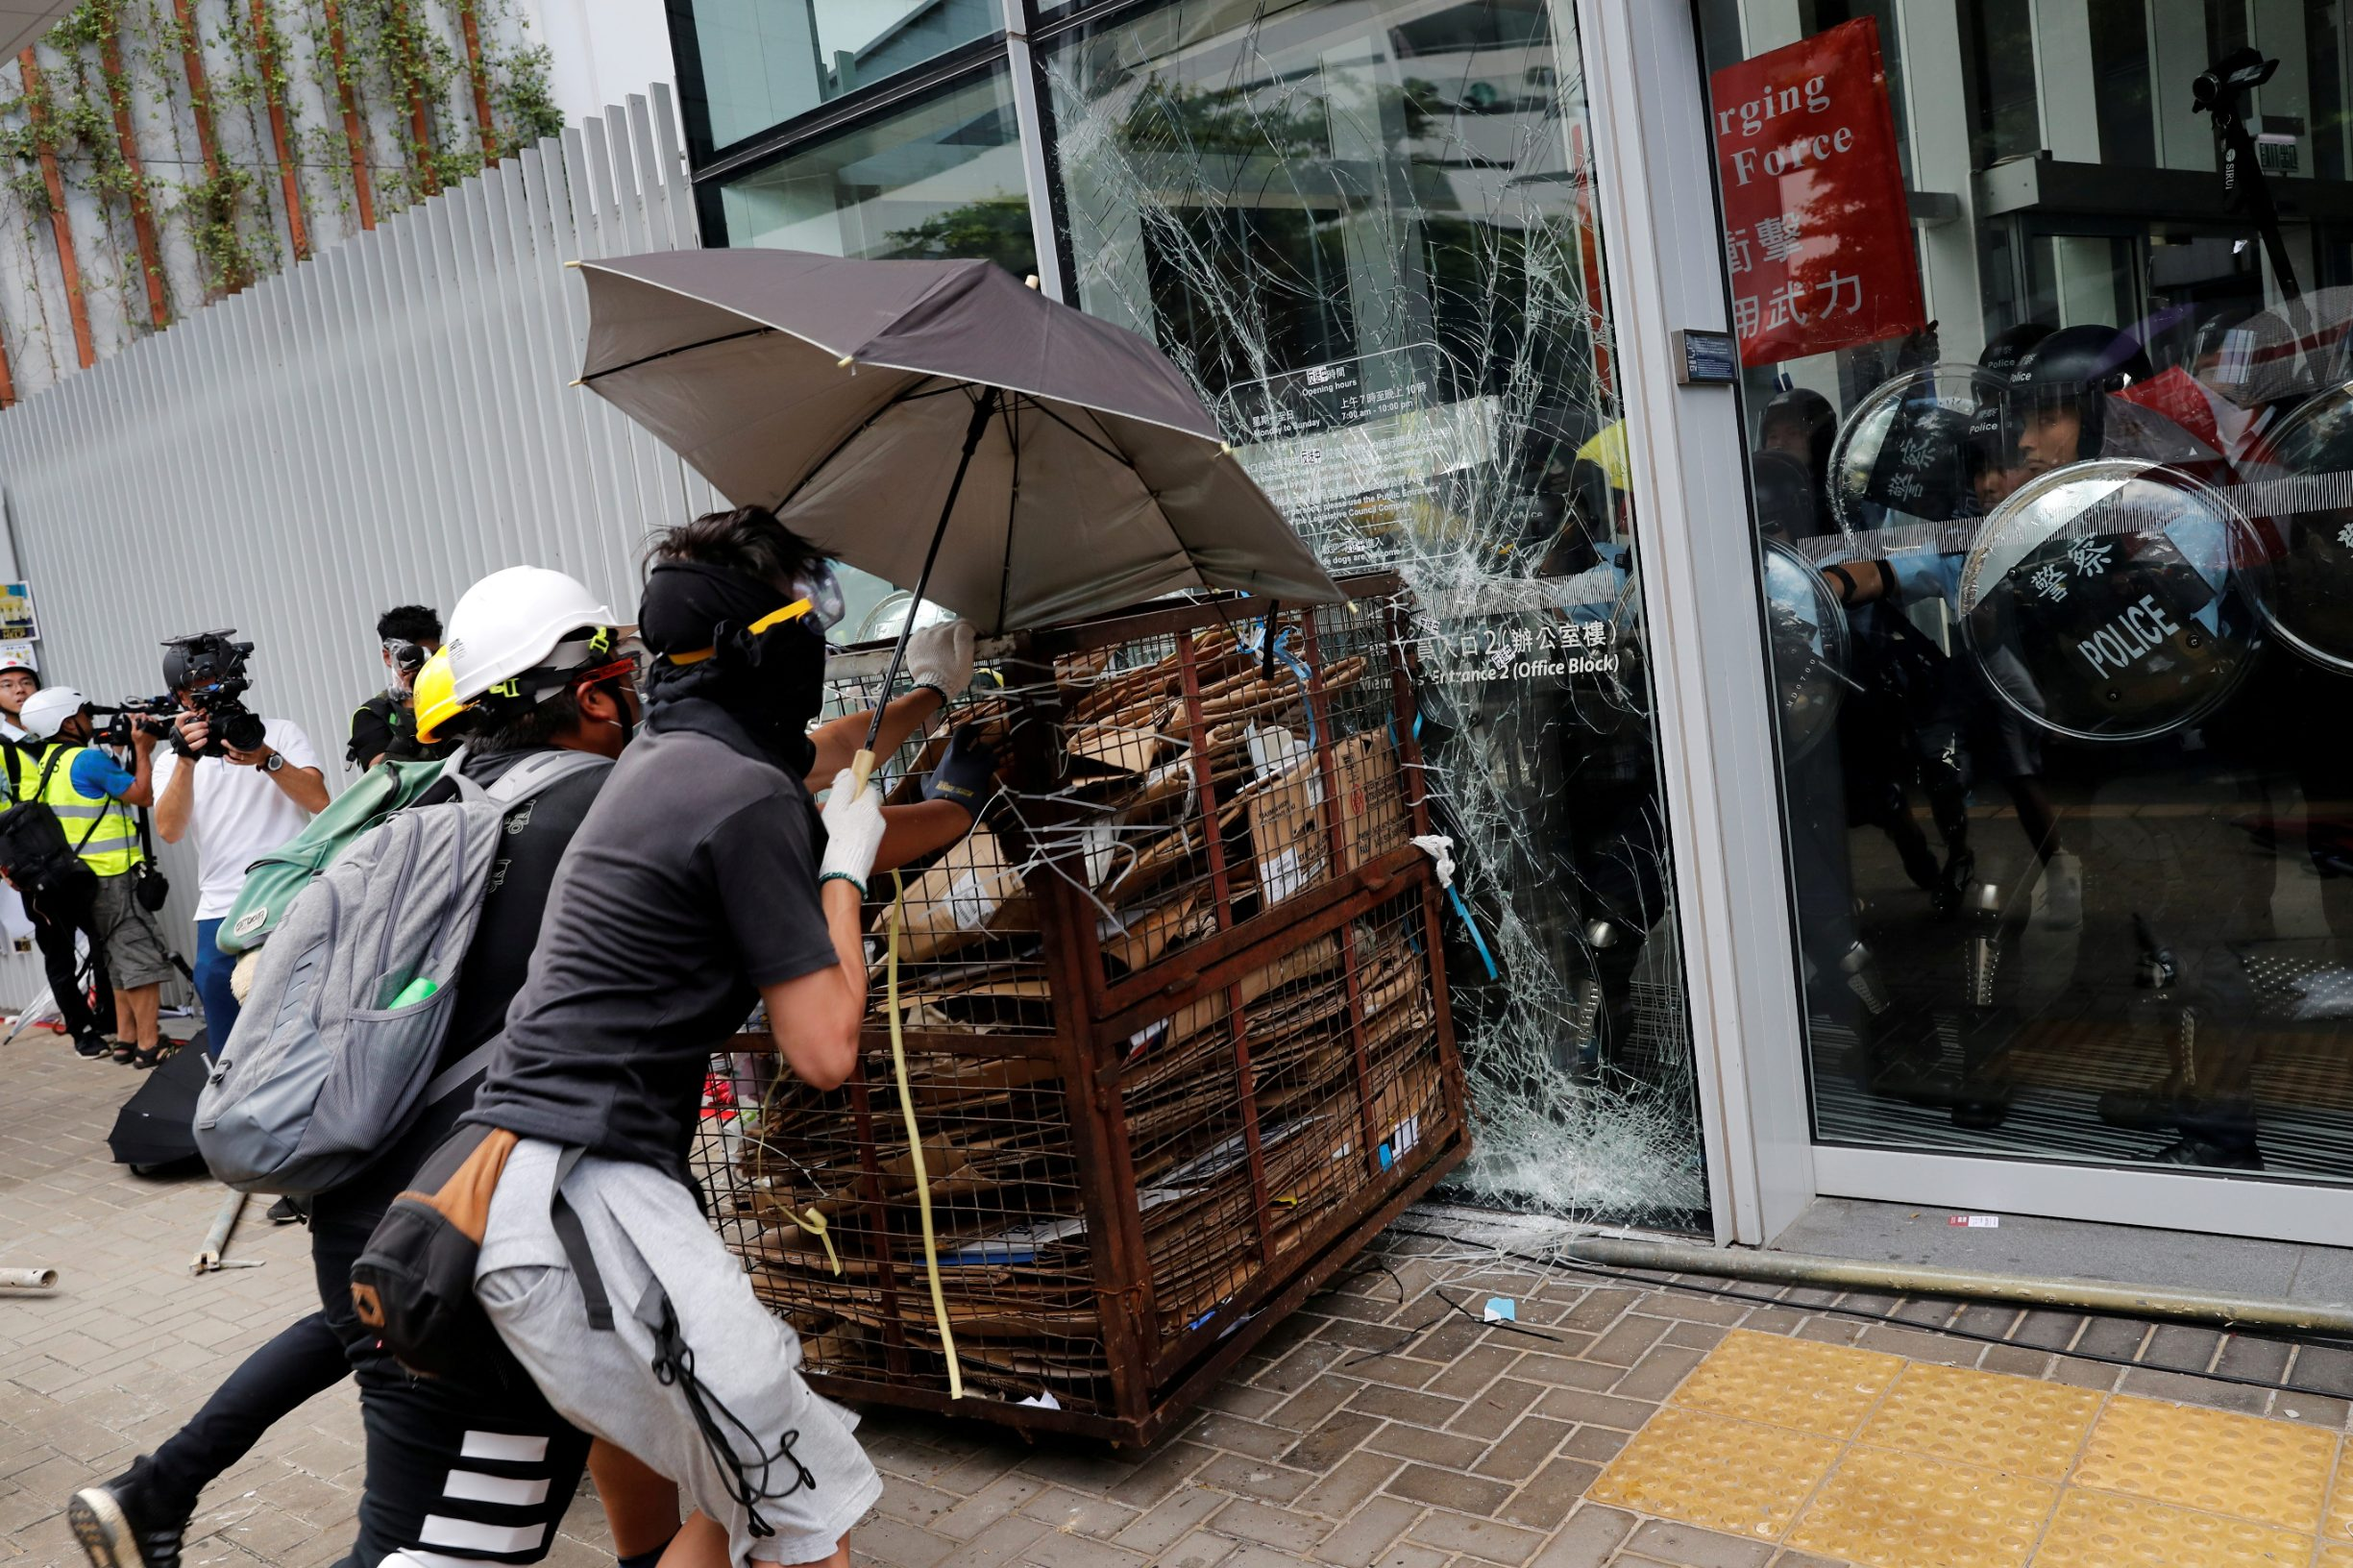 Protesters try to break into the Legislative Council building where riot police are seen, during the anniversary of Hong Kong's handover to China in Hong Kong, China July 1, 2019.  REUTERS/Tyrone Siu     TPX IMAGES OF THE DAY